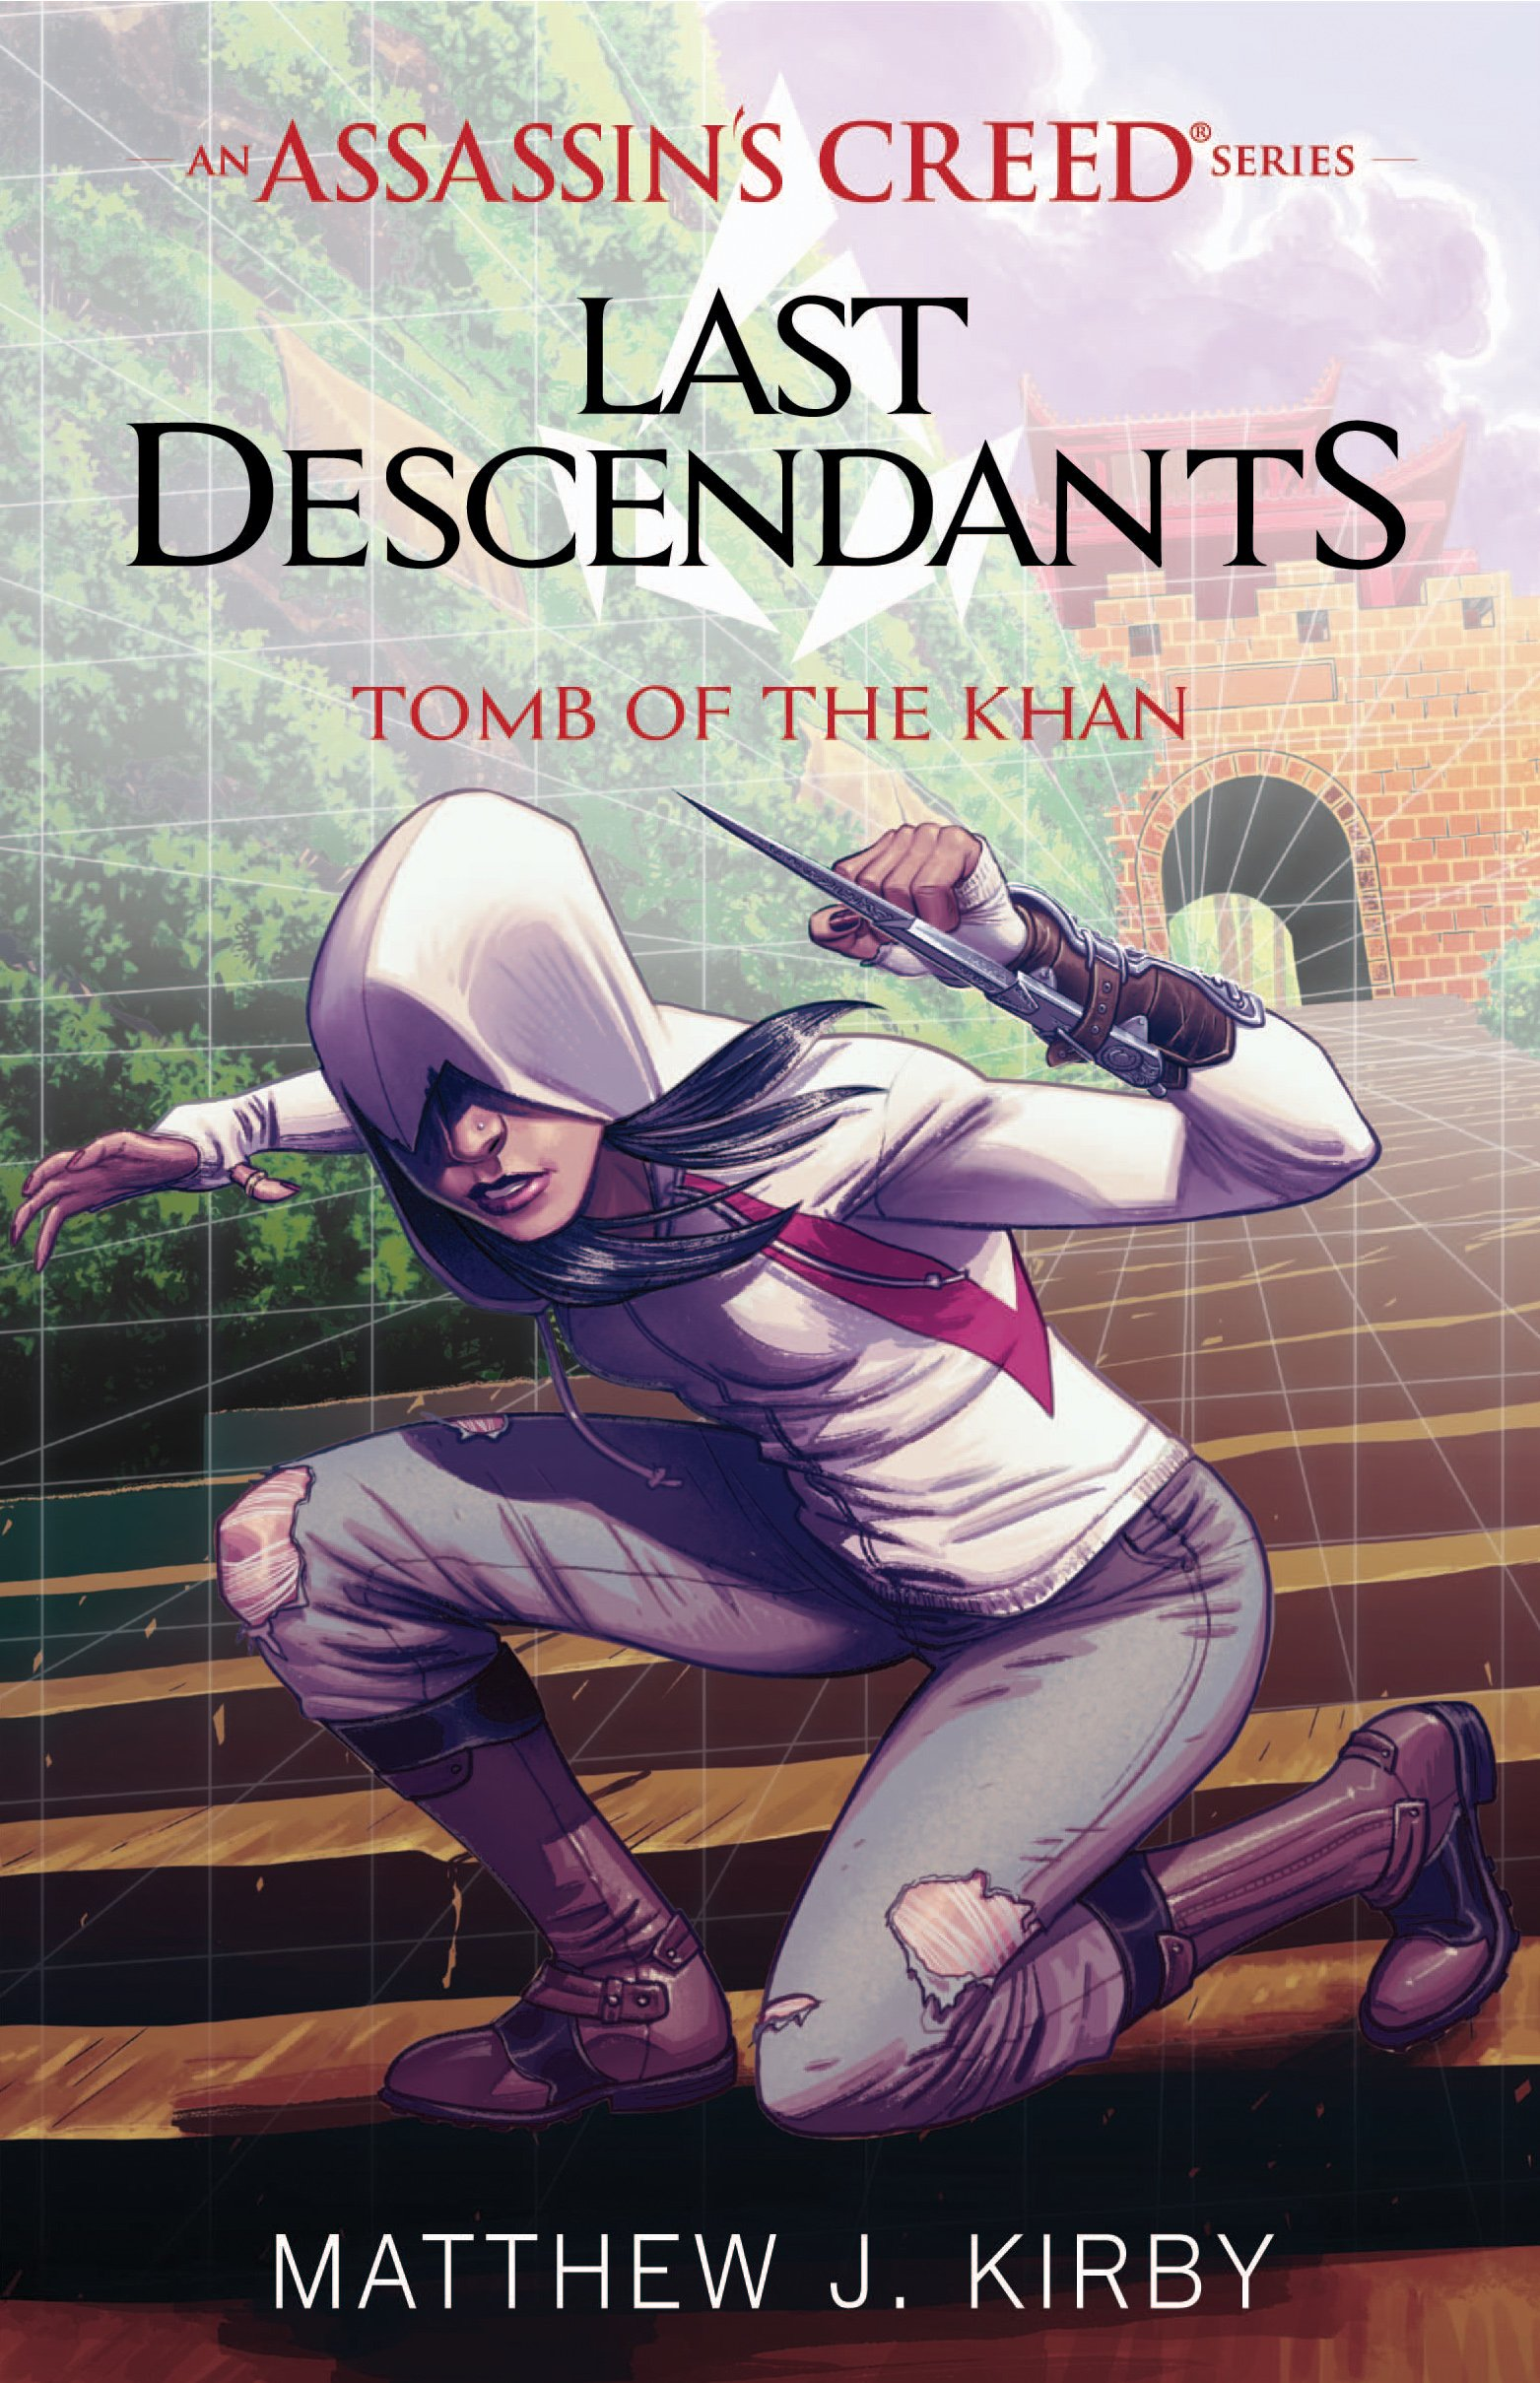 Assassin's Creed: Last Descendants – Tomb of the Khan